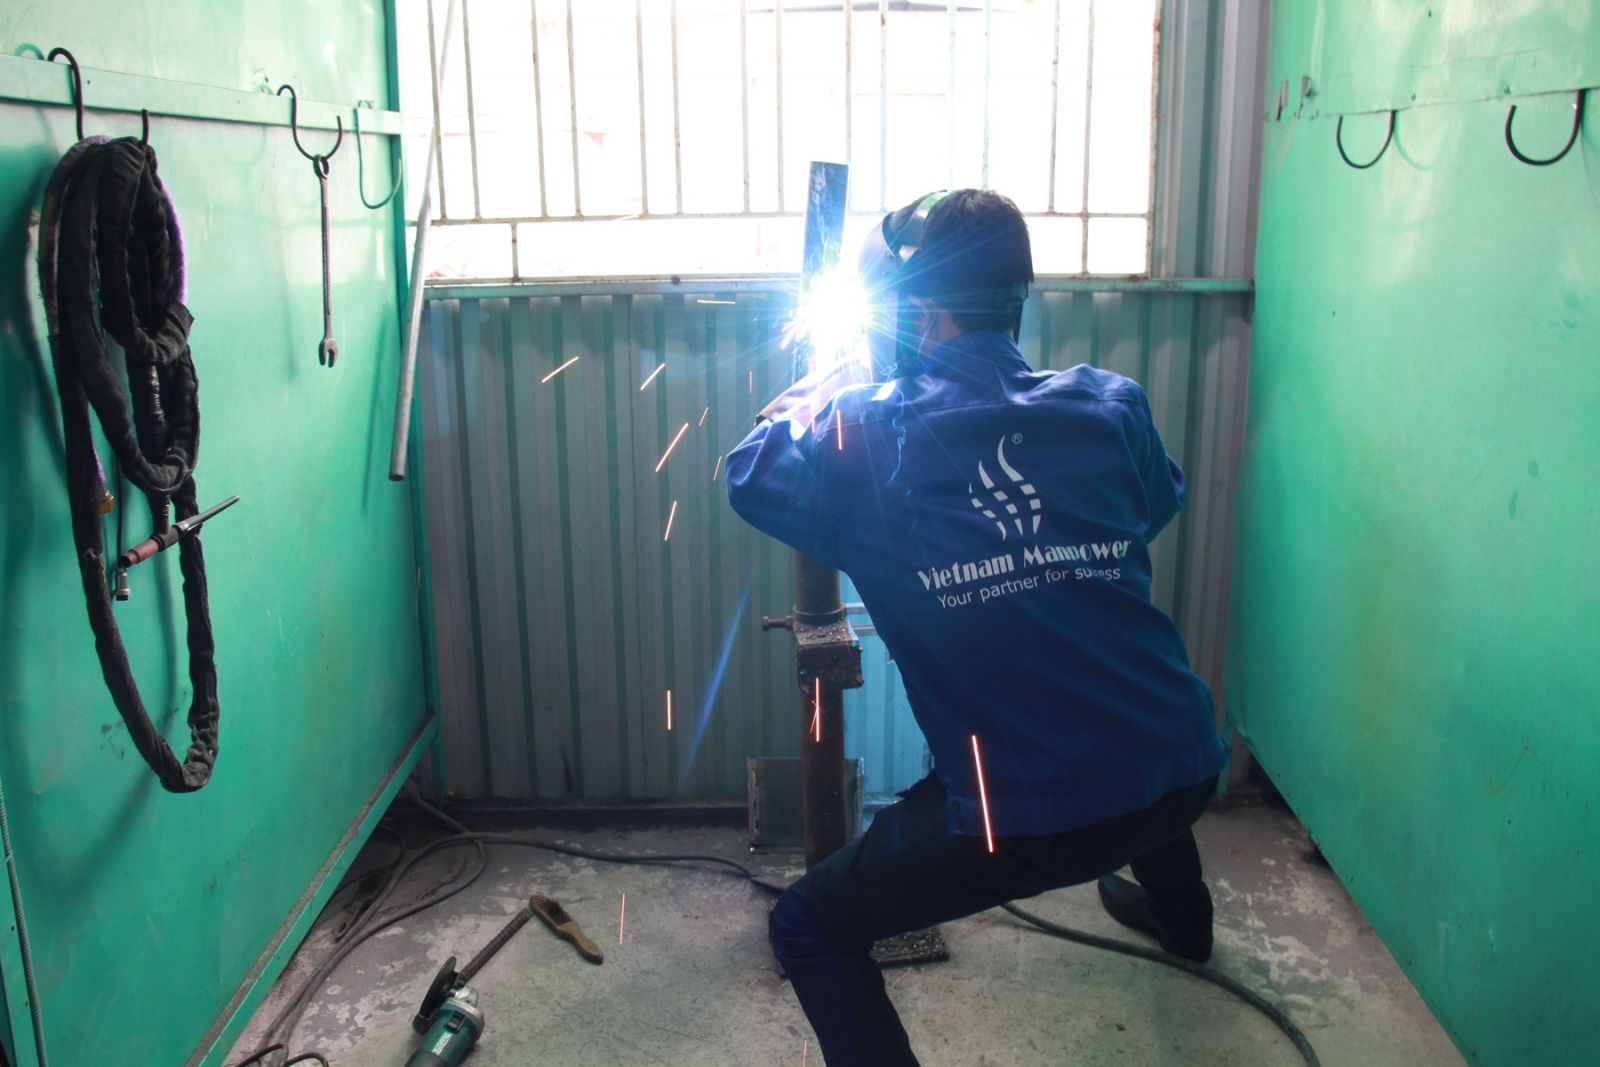 50 Vietnamese welders with good skills recruited in a successful campaign for Slovakia partner